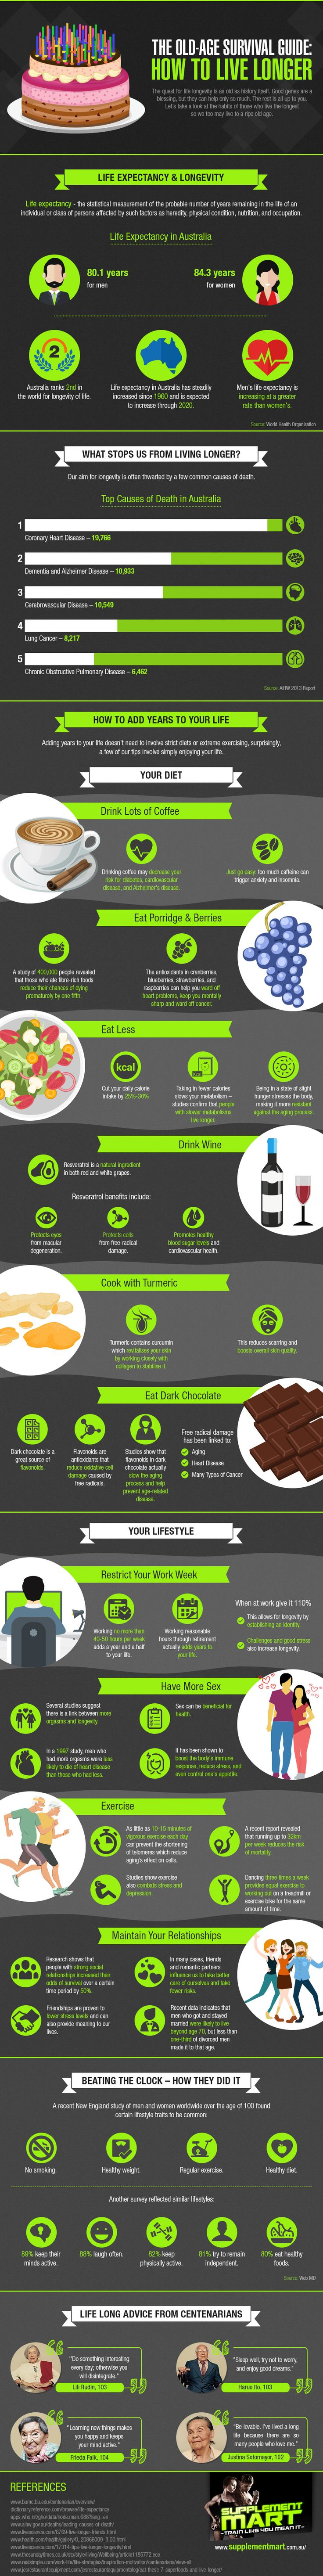 This infographic by Supplement Mart looks at how you can increase your chances of living to a ripe age, It explores everything from food choices to tips from centenarians.